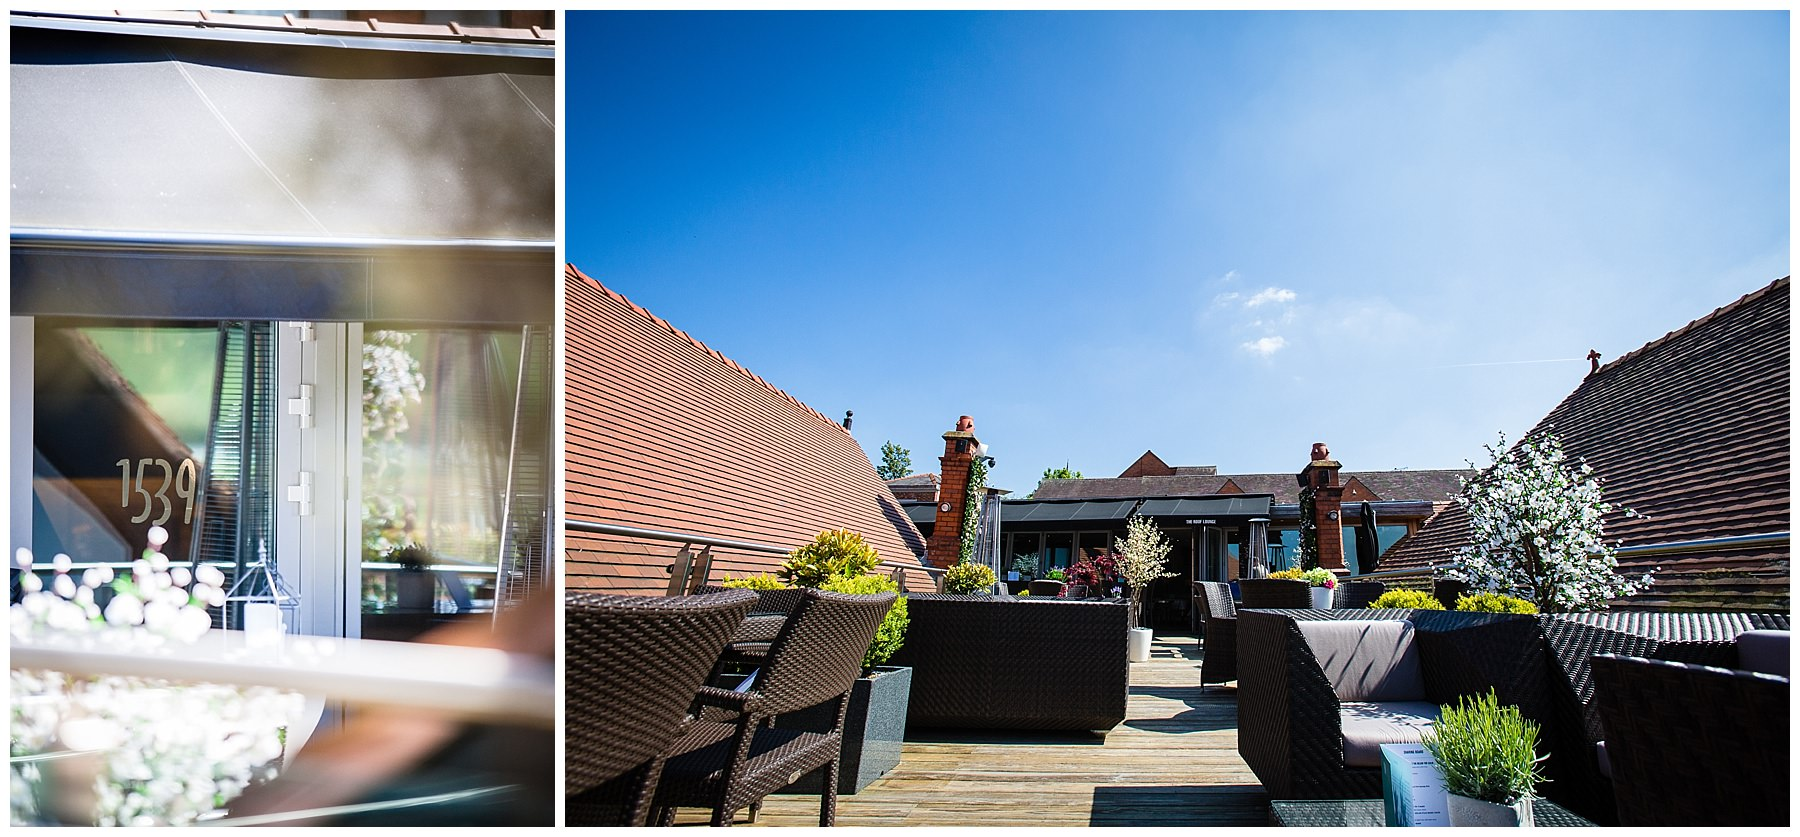 views of new roof terrace 1539 - chester event photographer